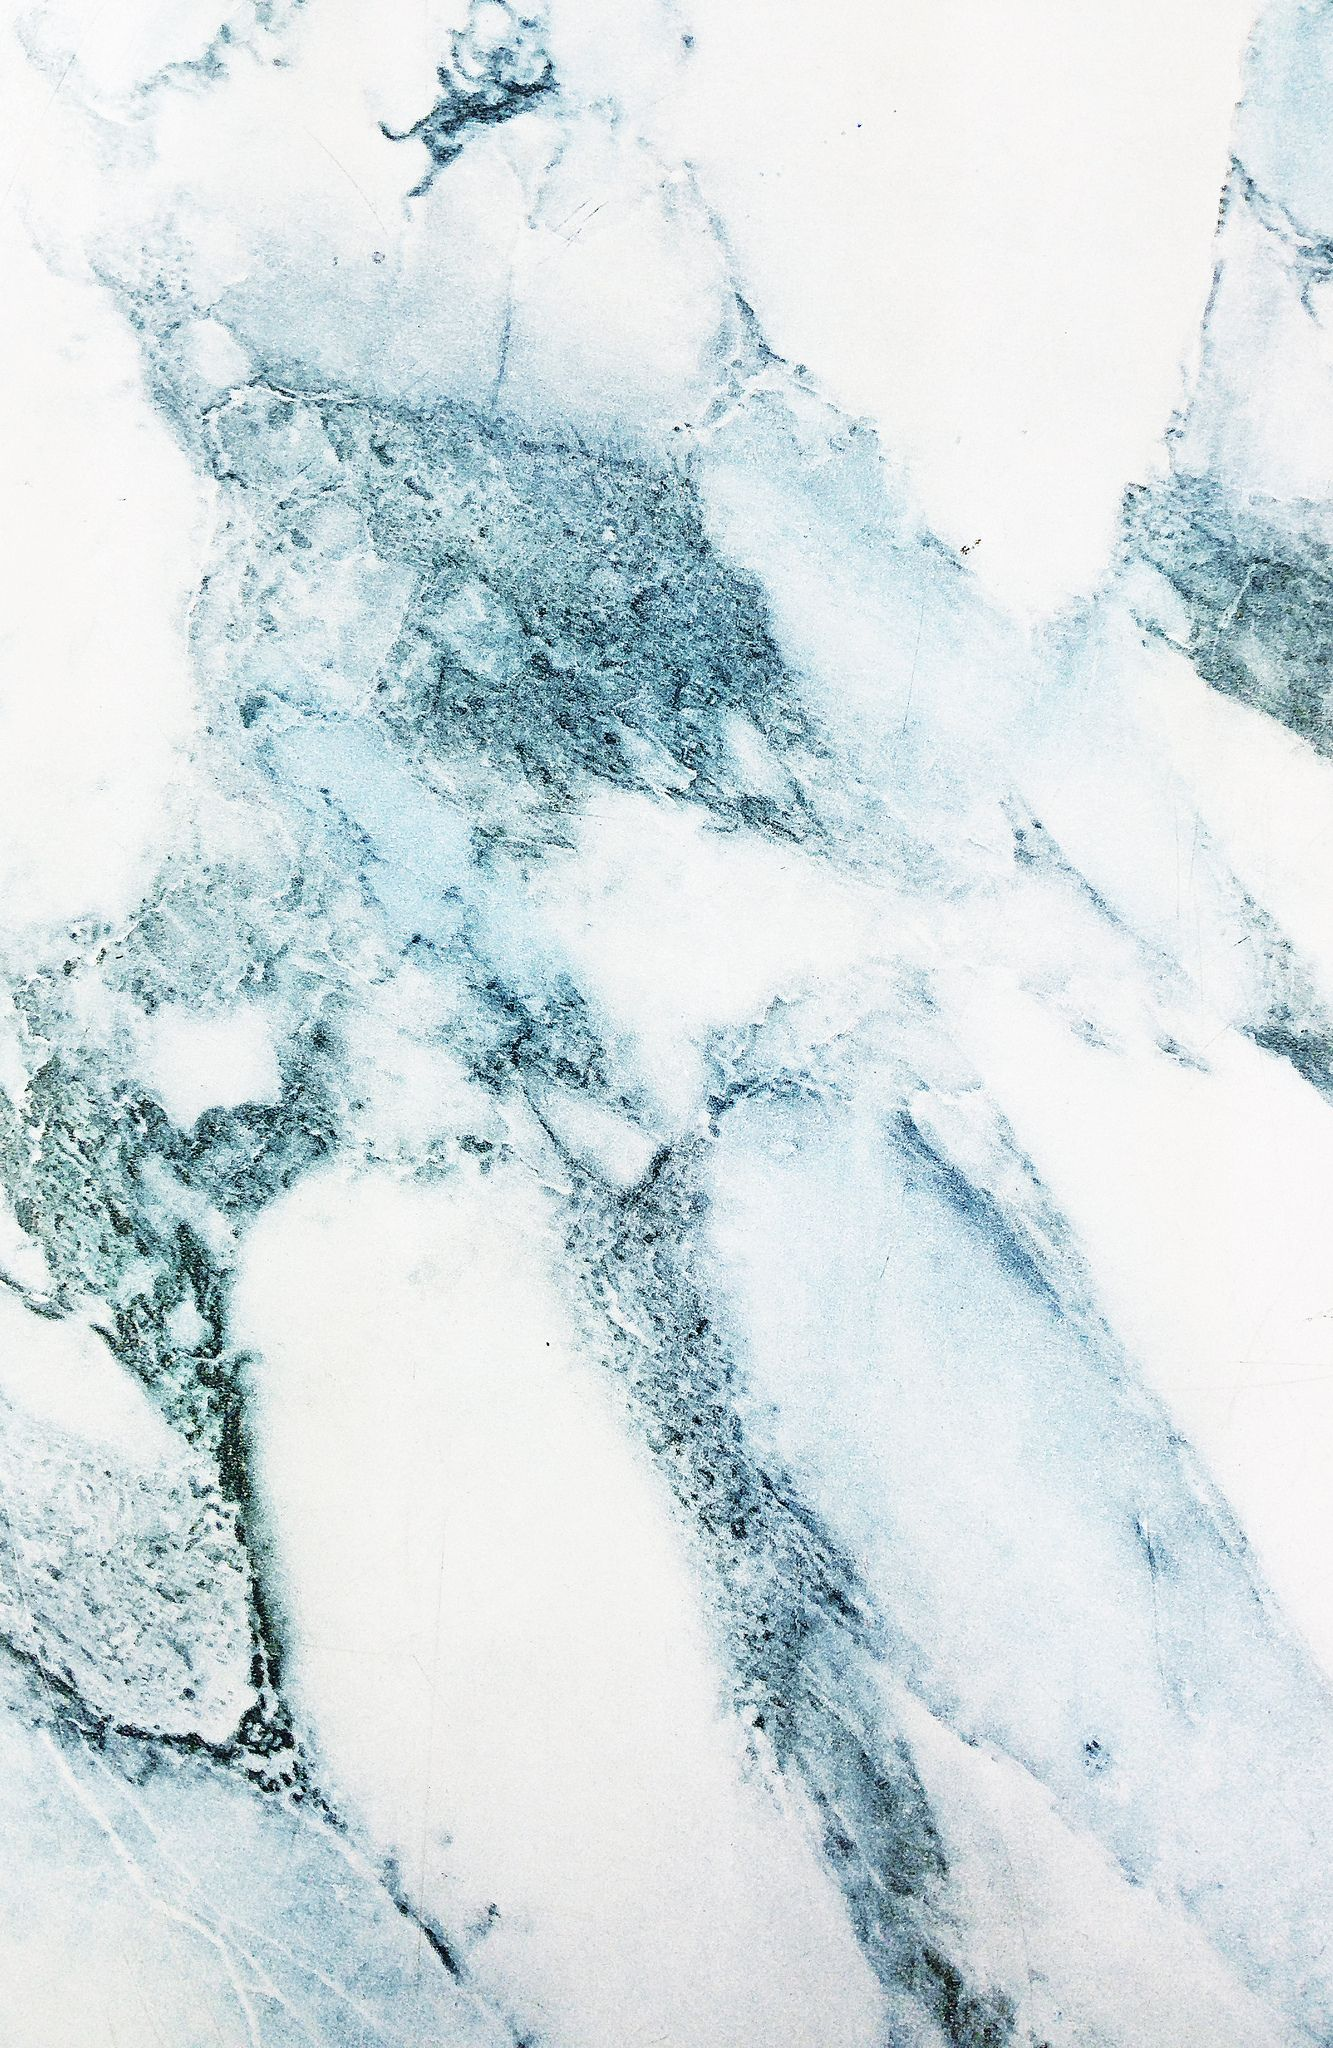 ⭐Explore more Wallpapers Teal marble wallpaper, Blue